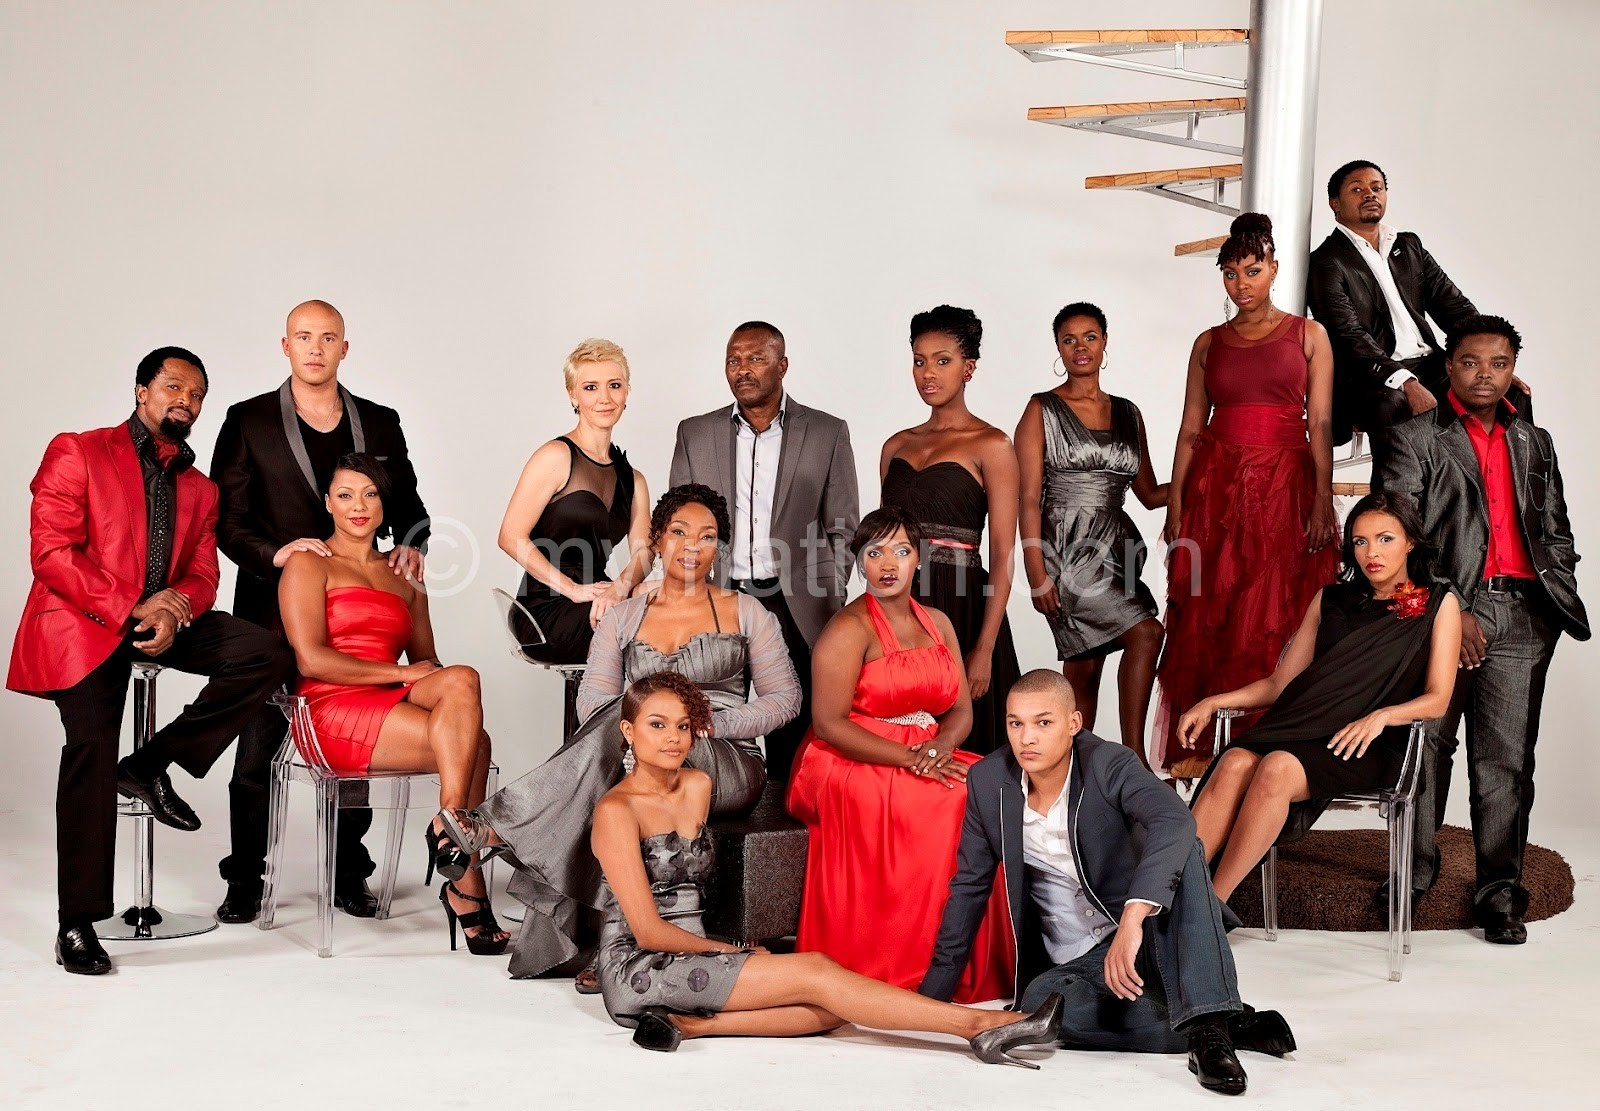 Some cast members of one of the programmes, Scandle